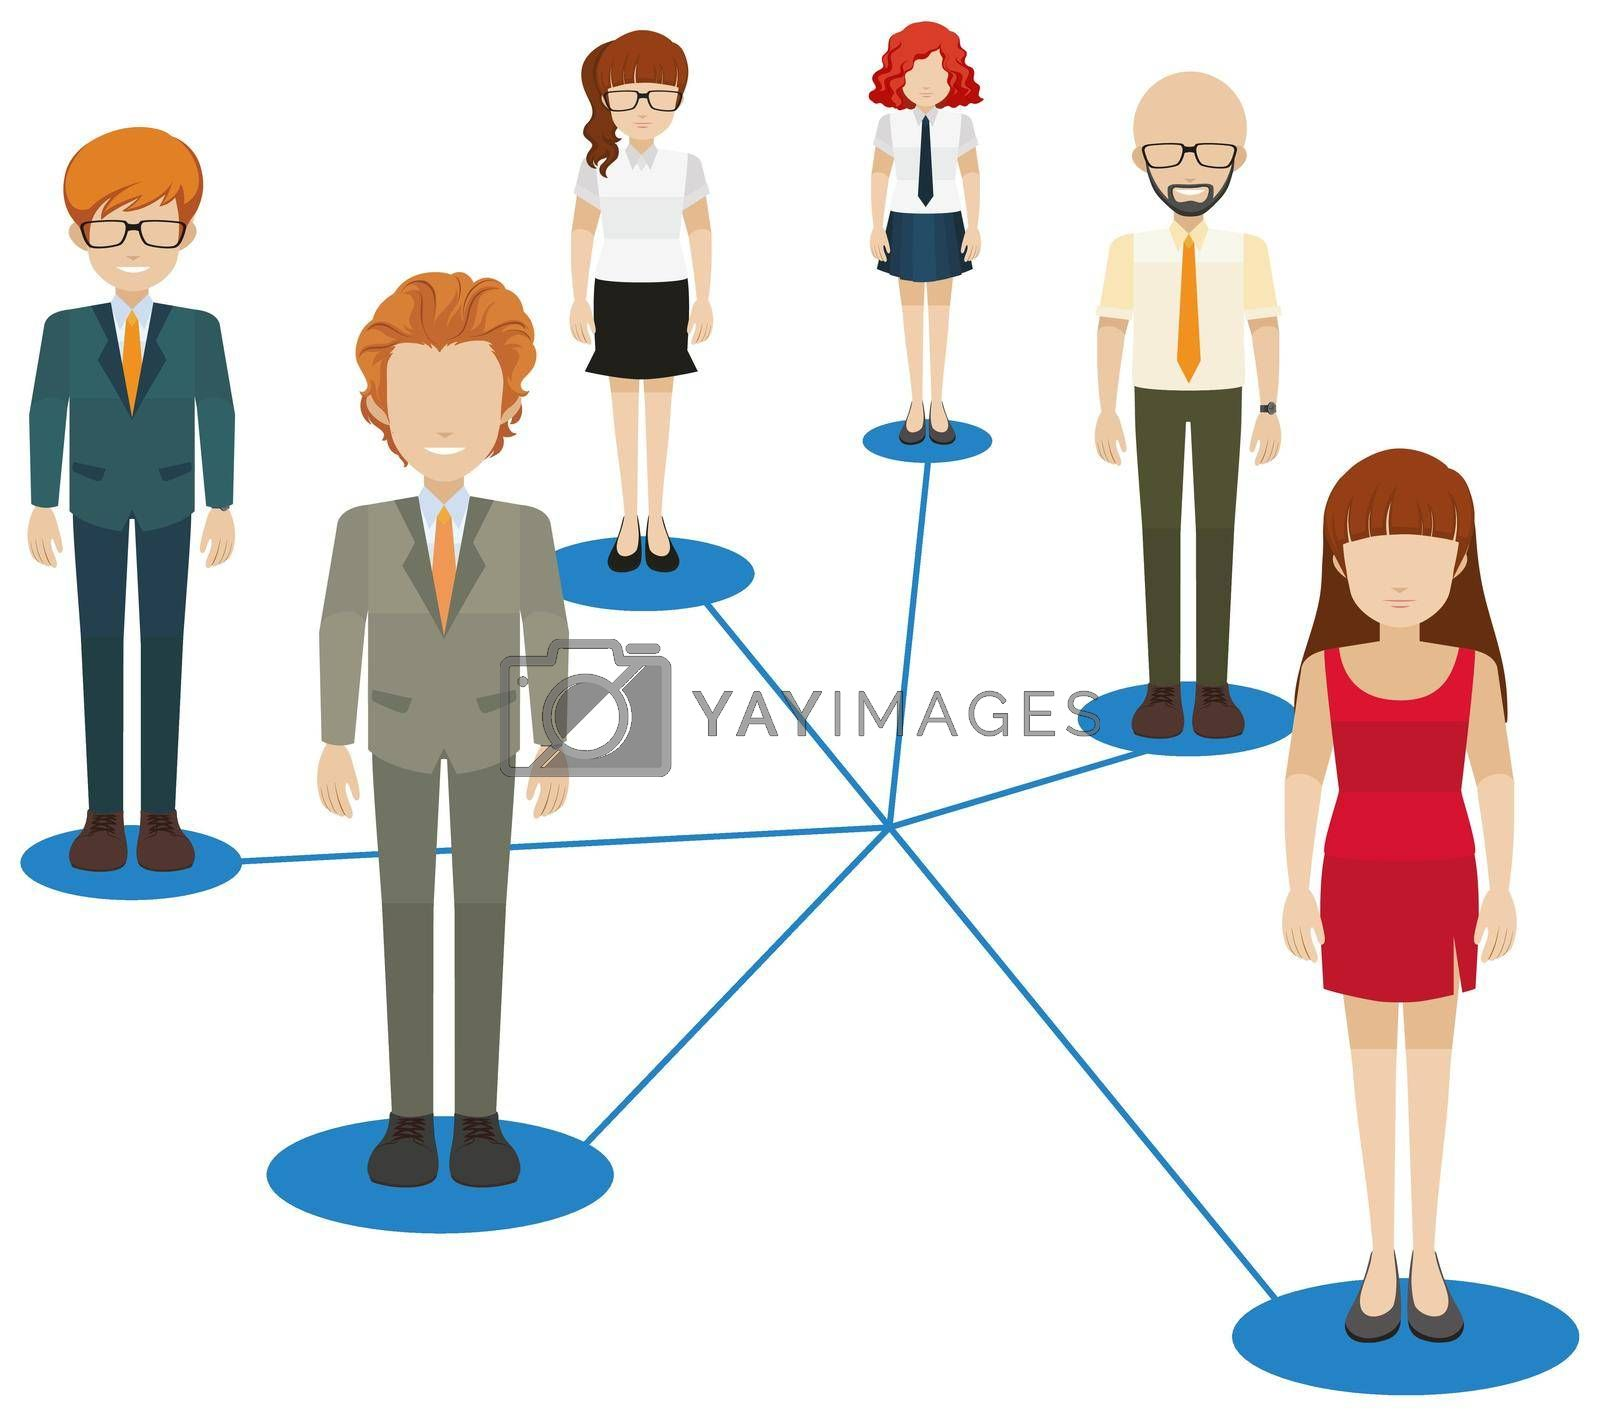 Royalty free image of Network of people by iimages